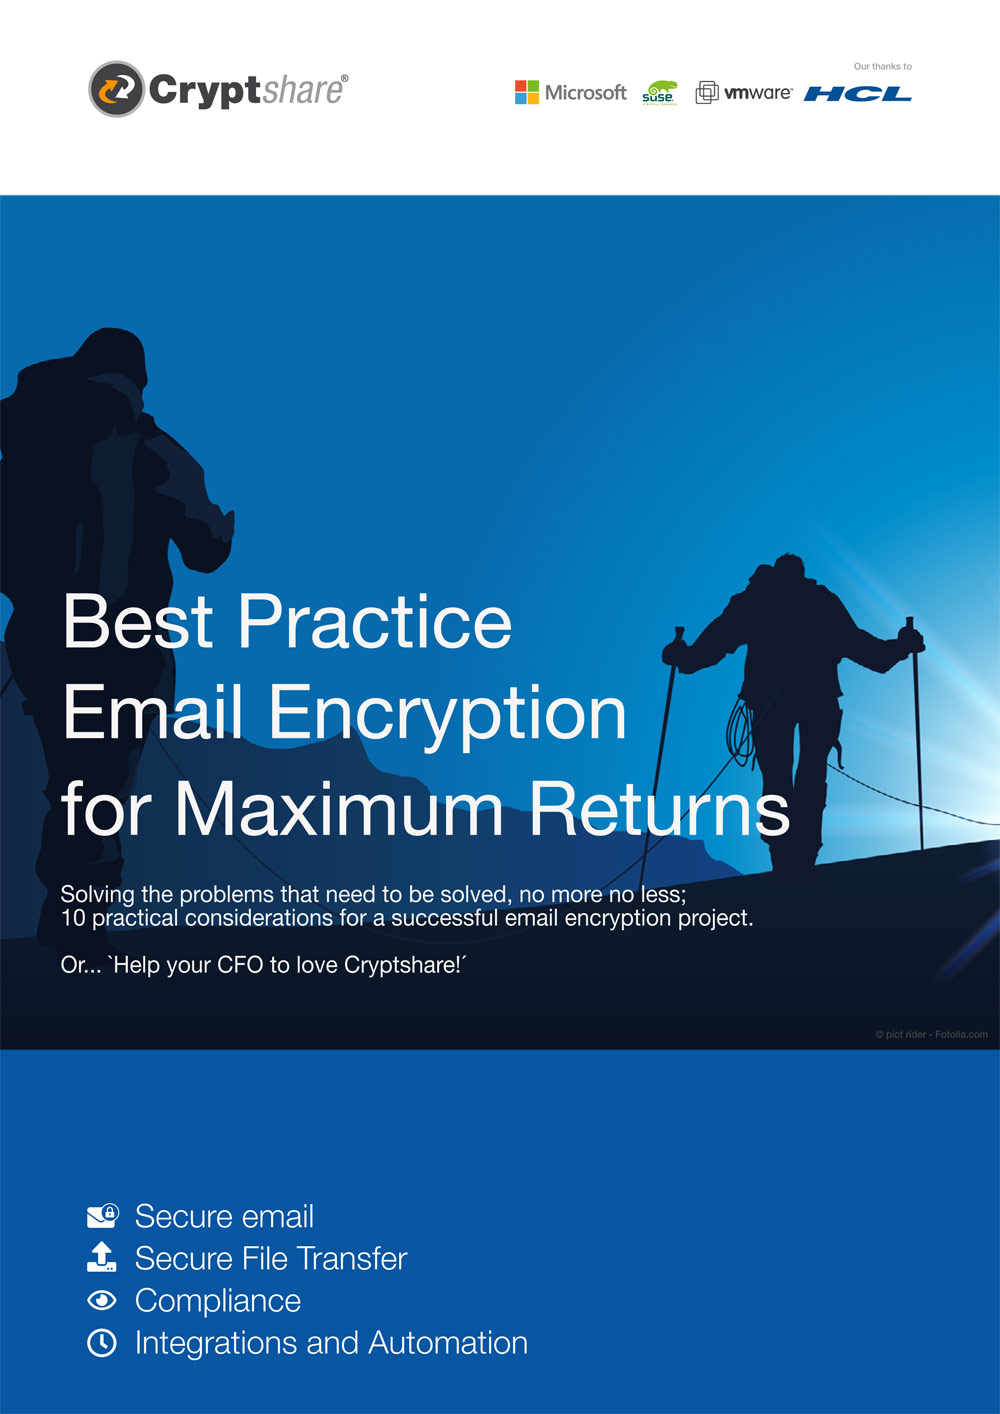 Cryptshare-Best_practice_guide_for_e-mail_encryption-05242019-US-EN-web